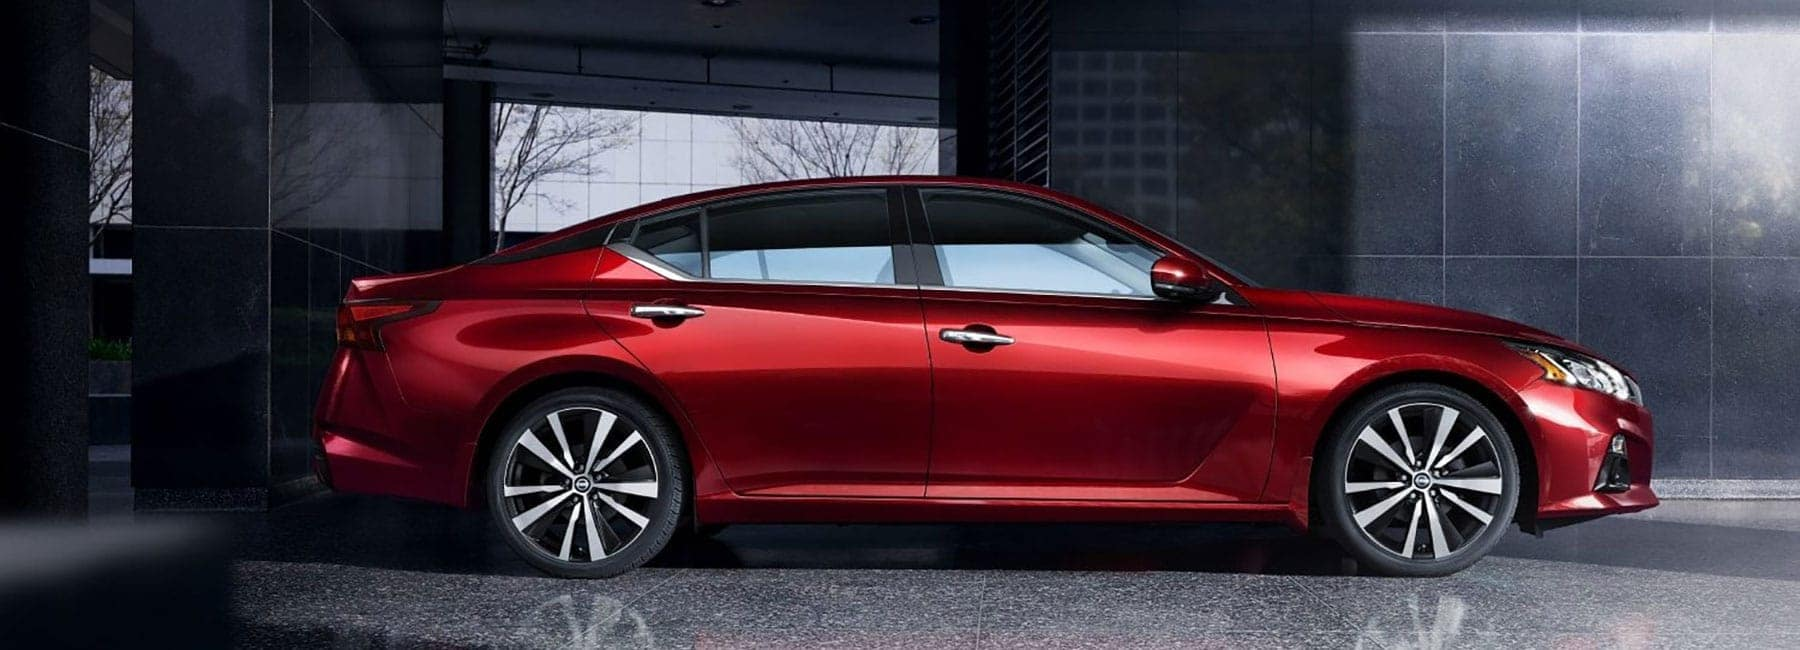 Side-view of a Red Nissan Altima